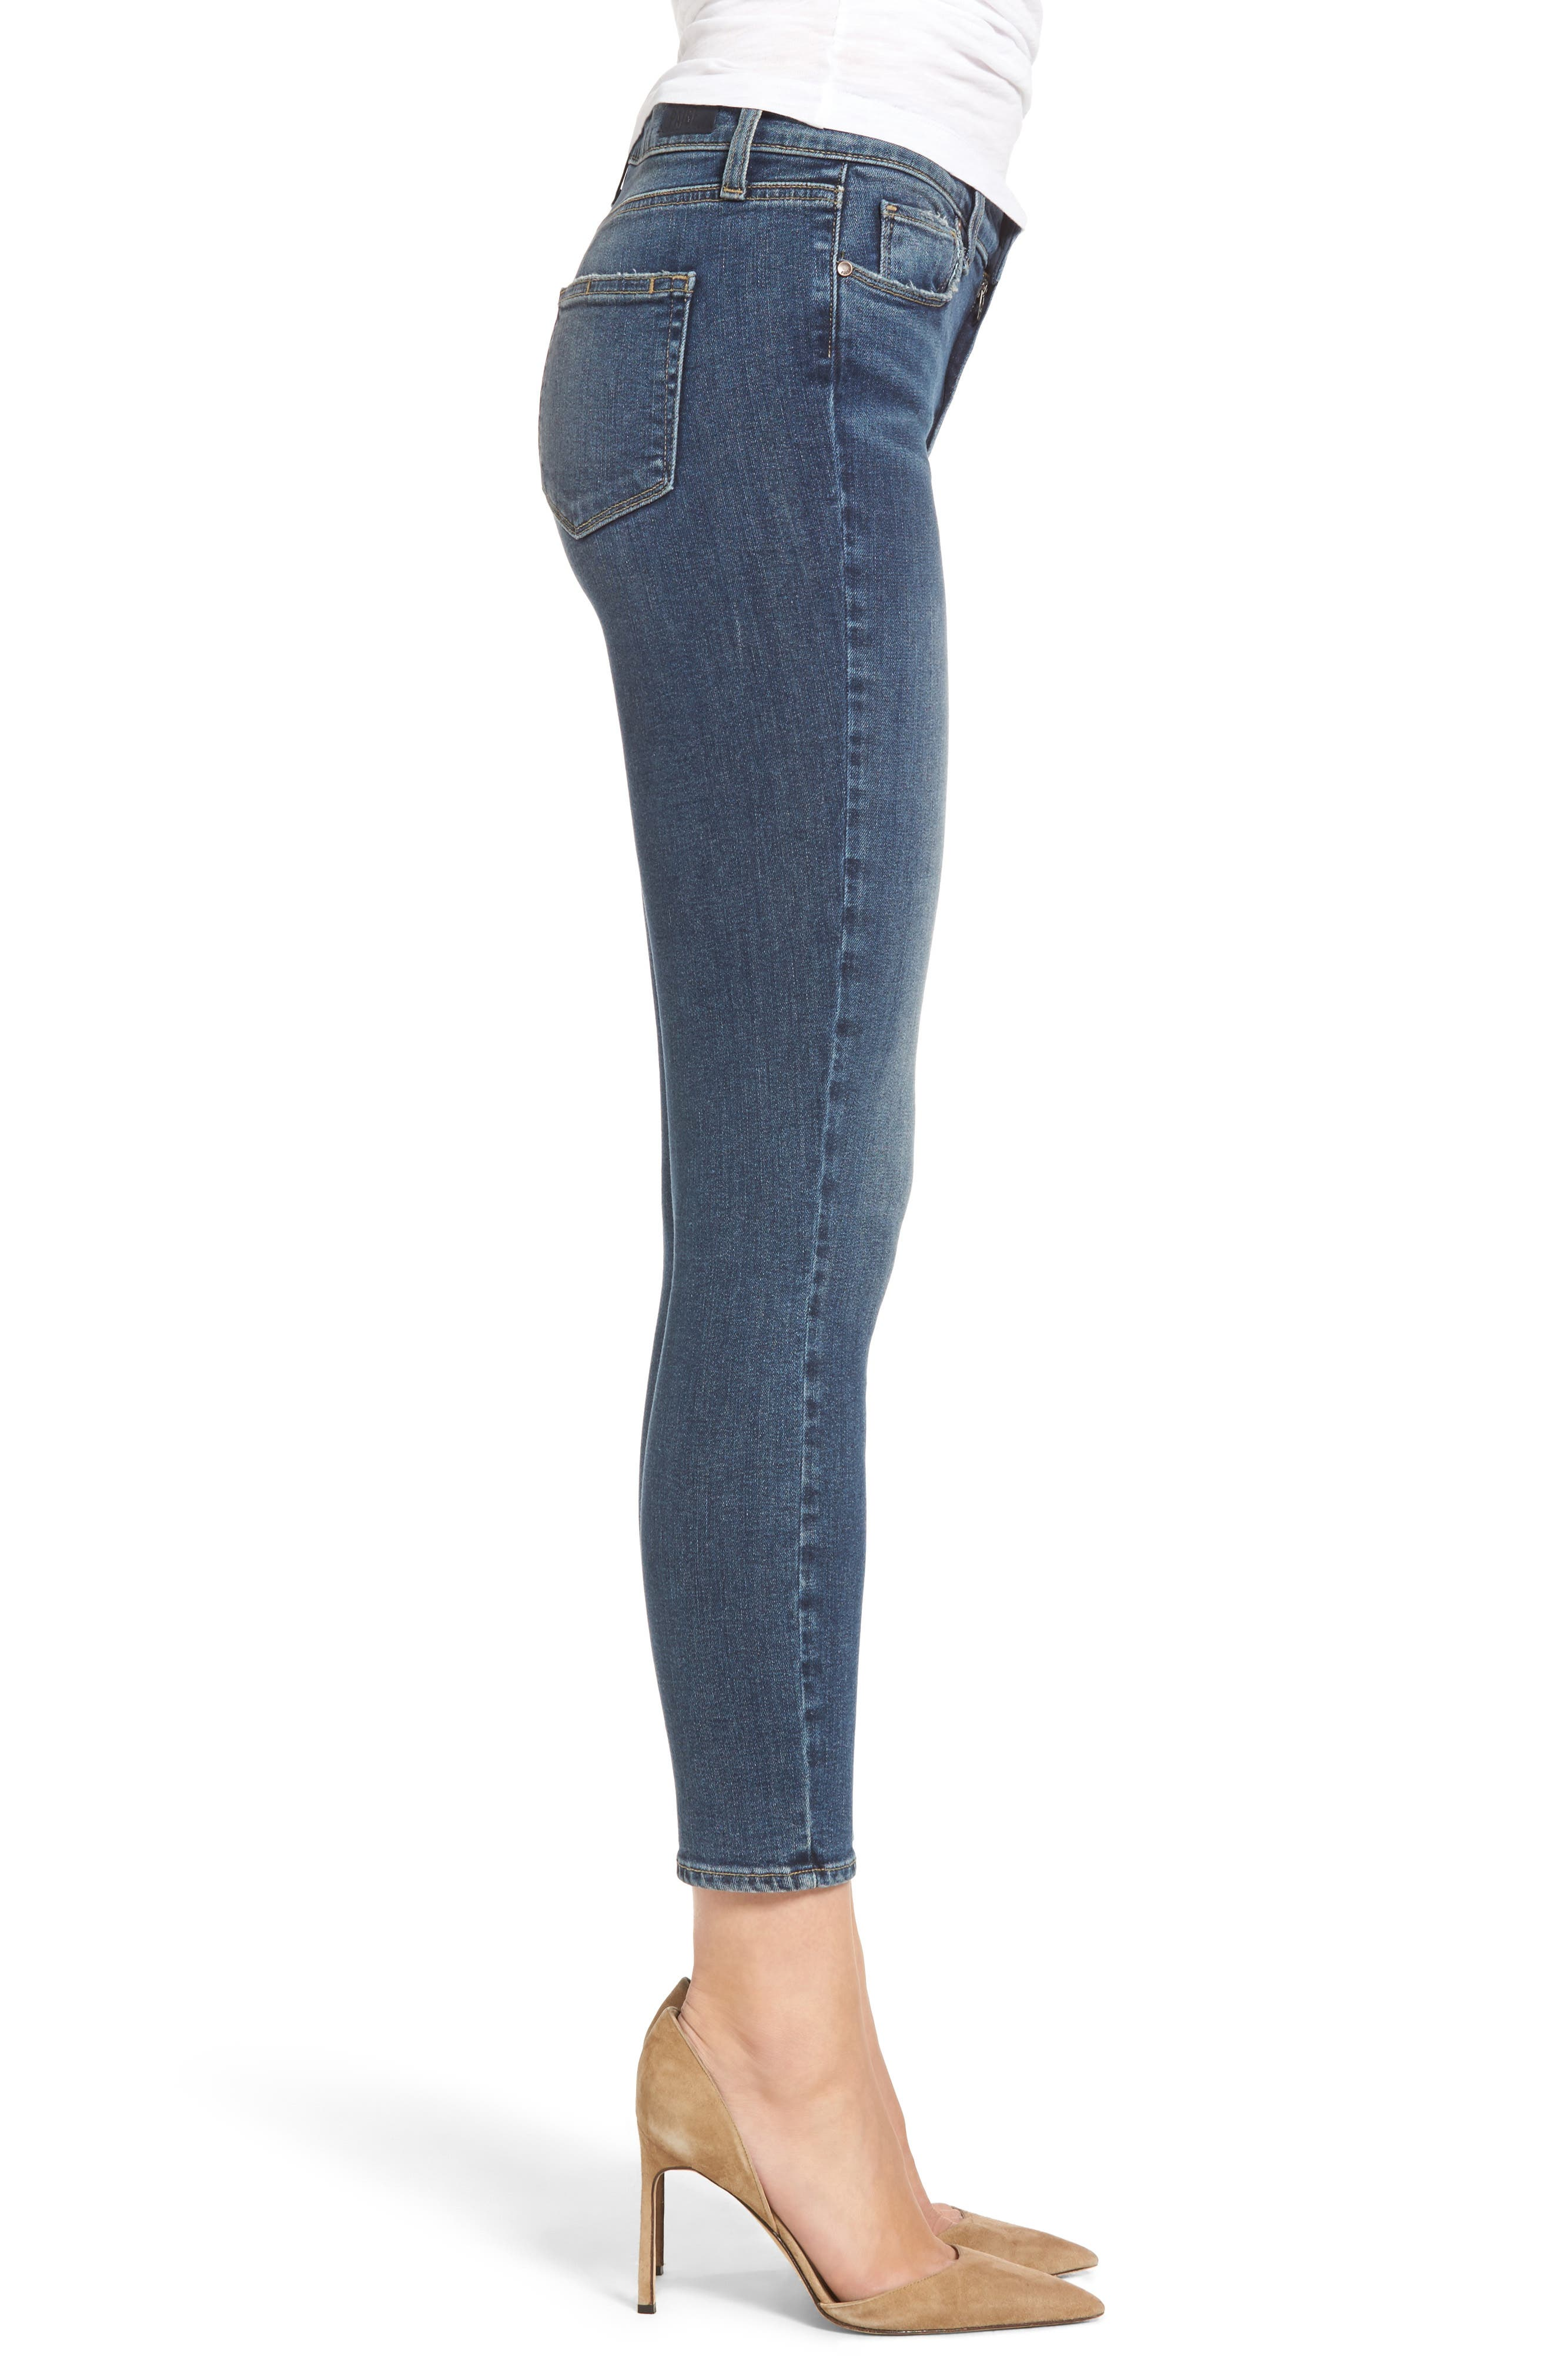 Hoxton High Waist Crop Skinny Jeans,                             Alternate thumbnail 4, color,                             400